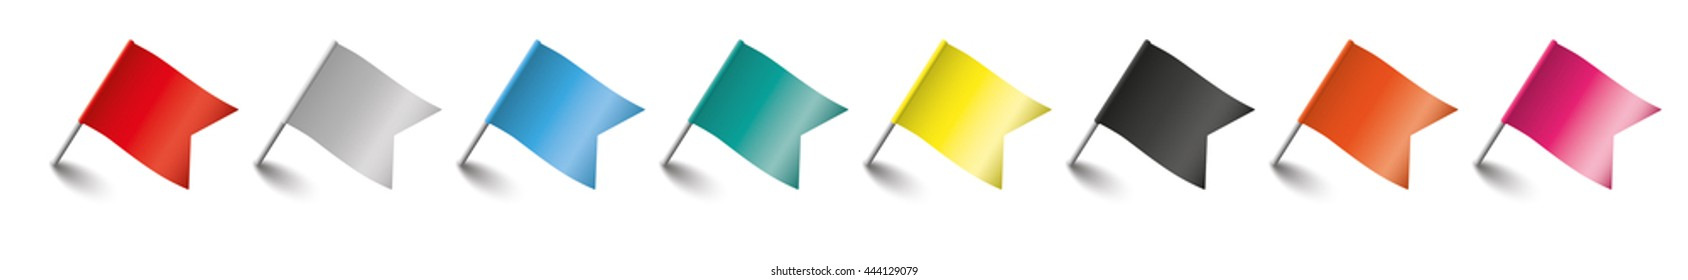 Yellow Flag Images, Stock Photos & Vectors | Shutterstock